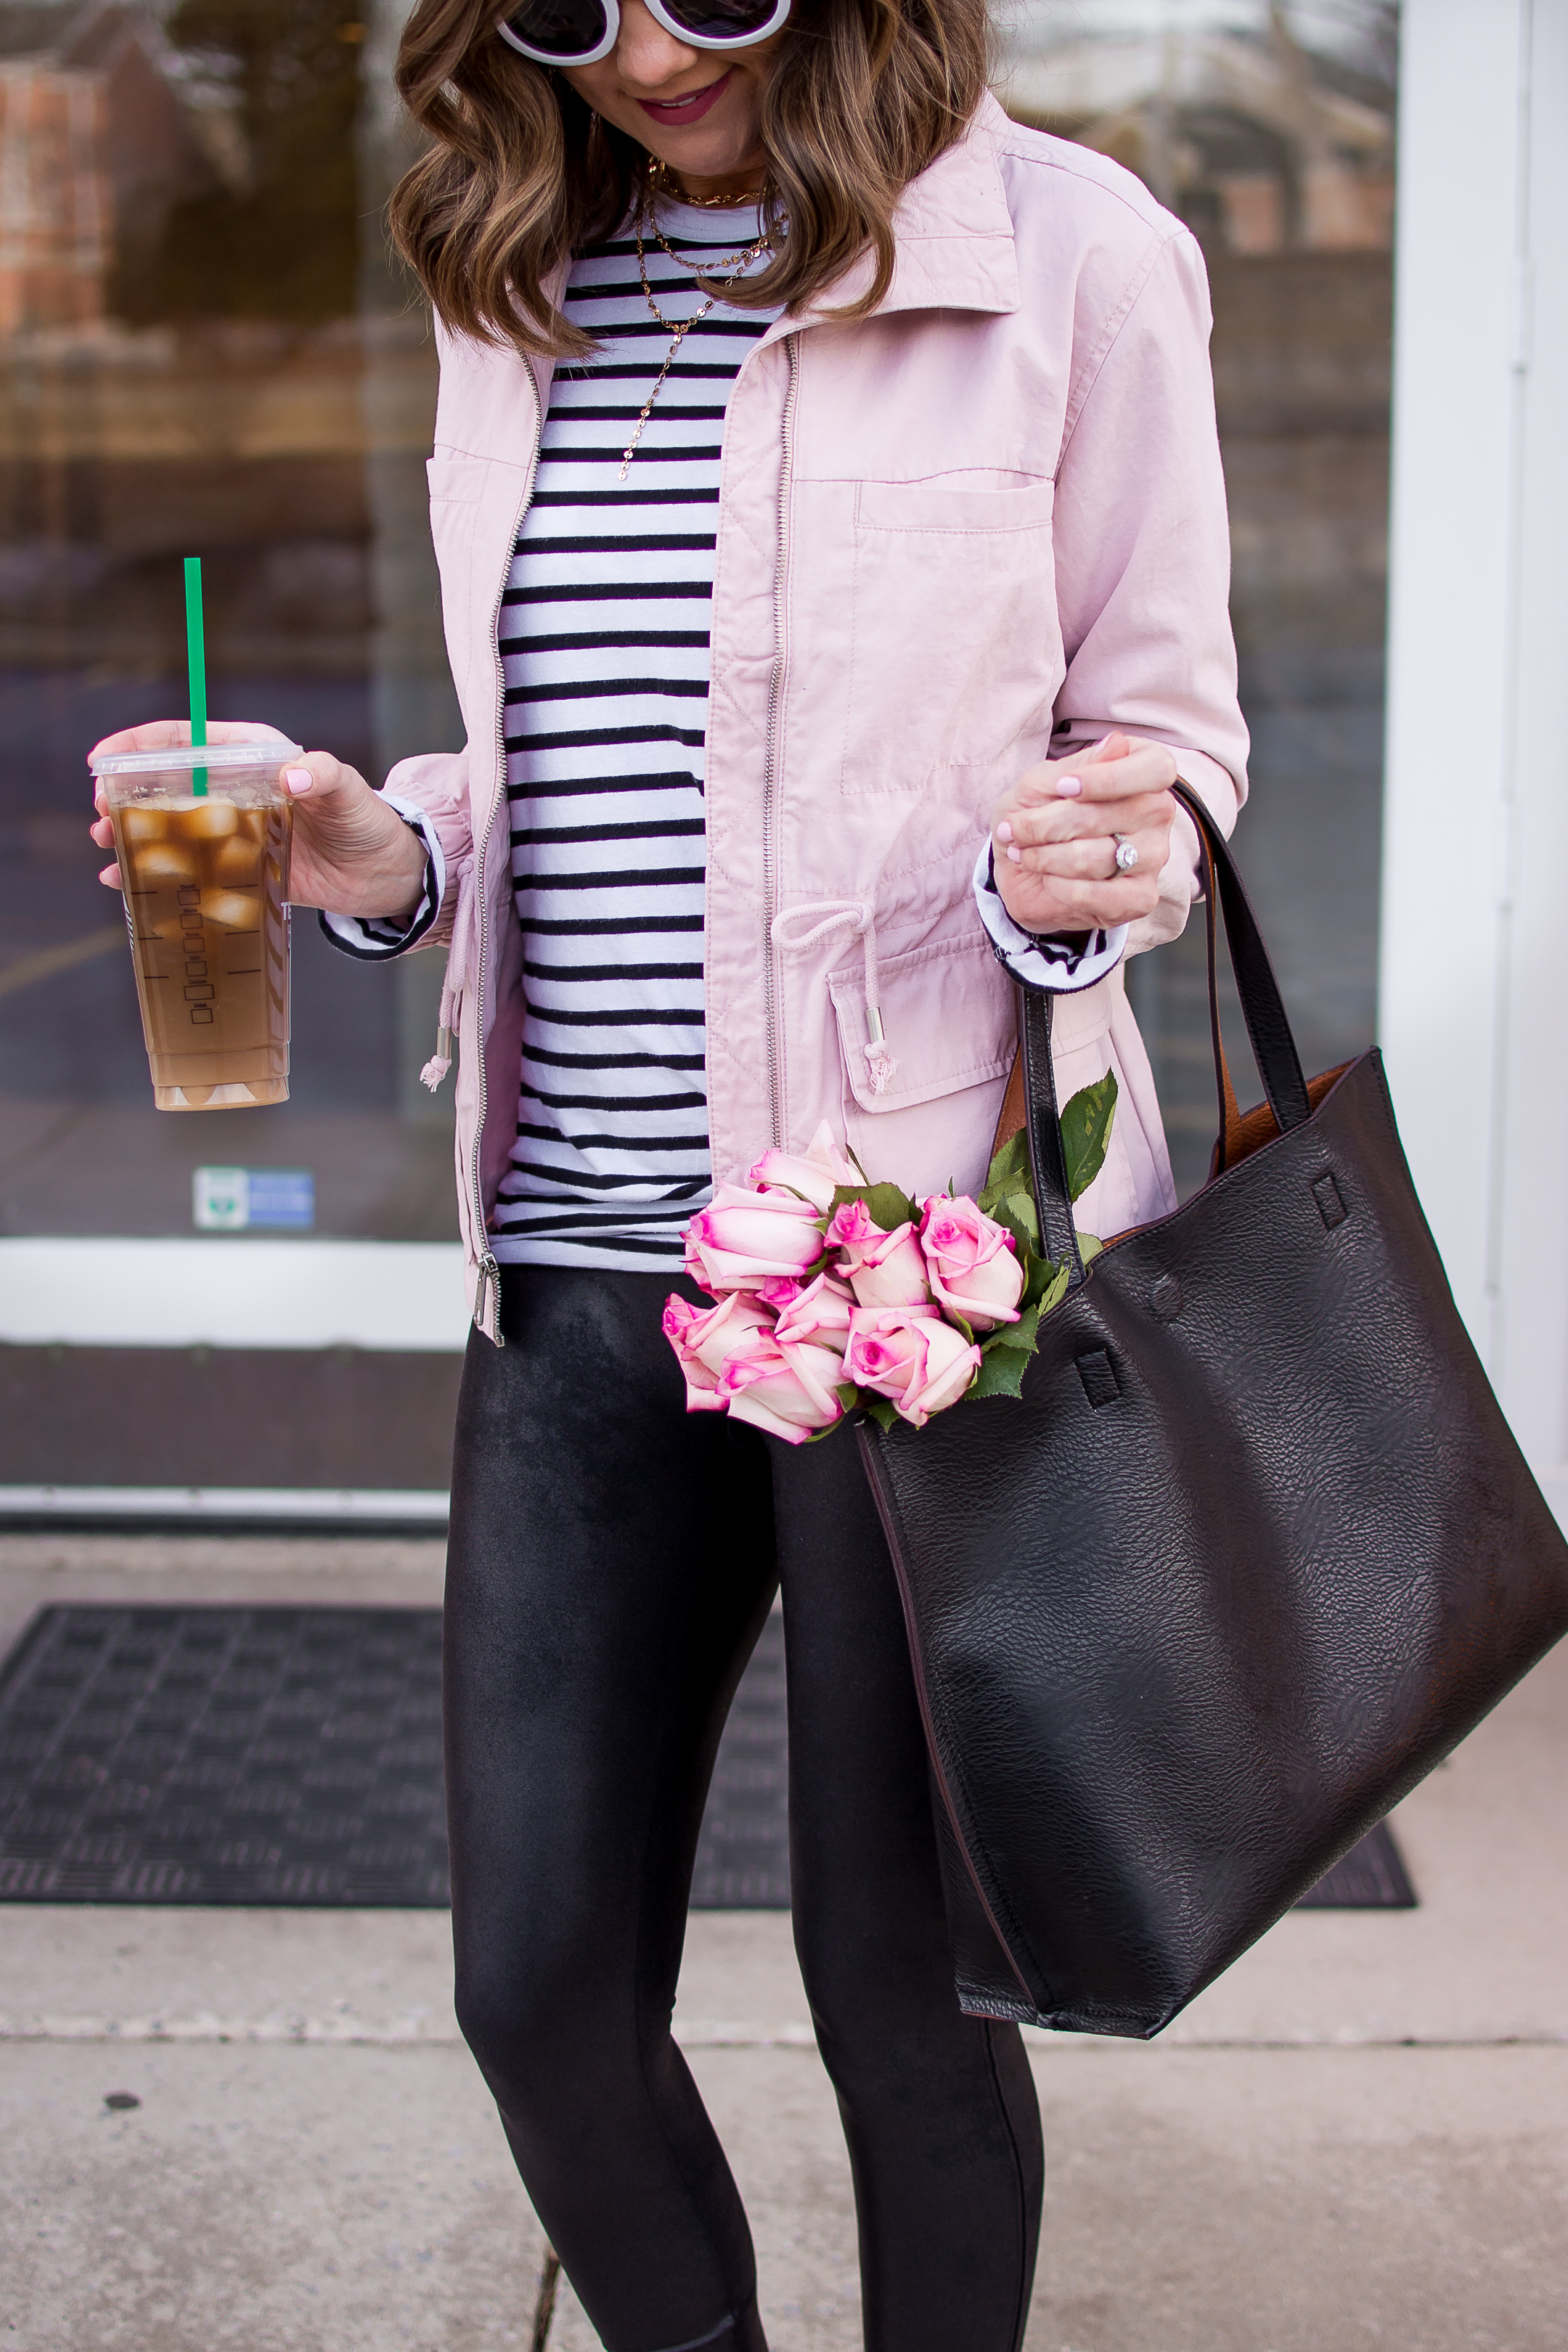 spring fashion 2018, old navy pink field jacket, how to style faux leather leggings as a mom, comfy and cute mom outfit, casual faux leather leggings outfit